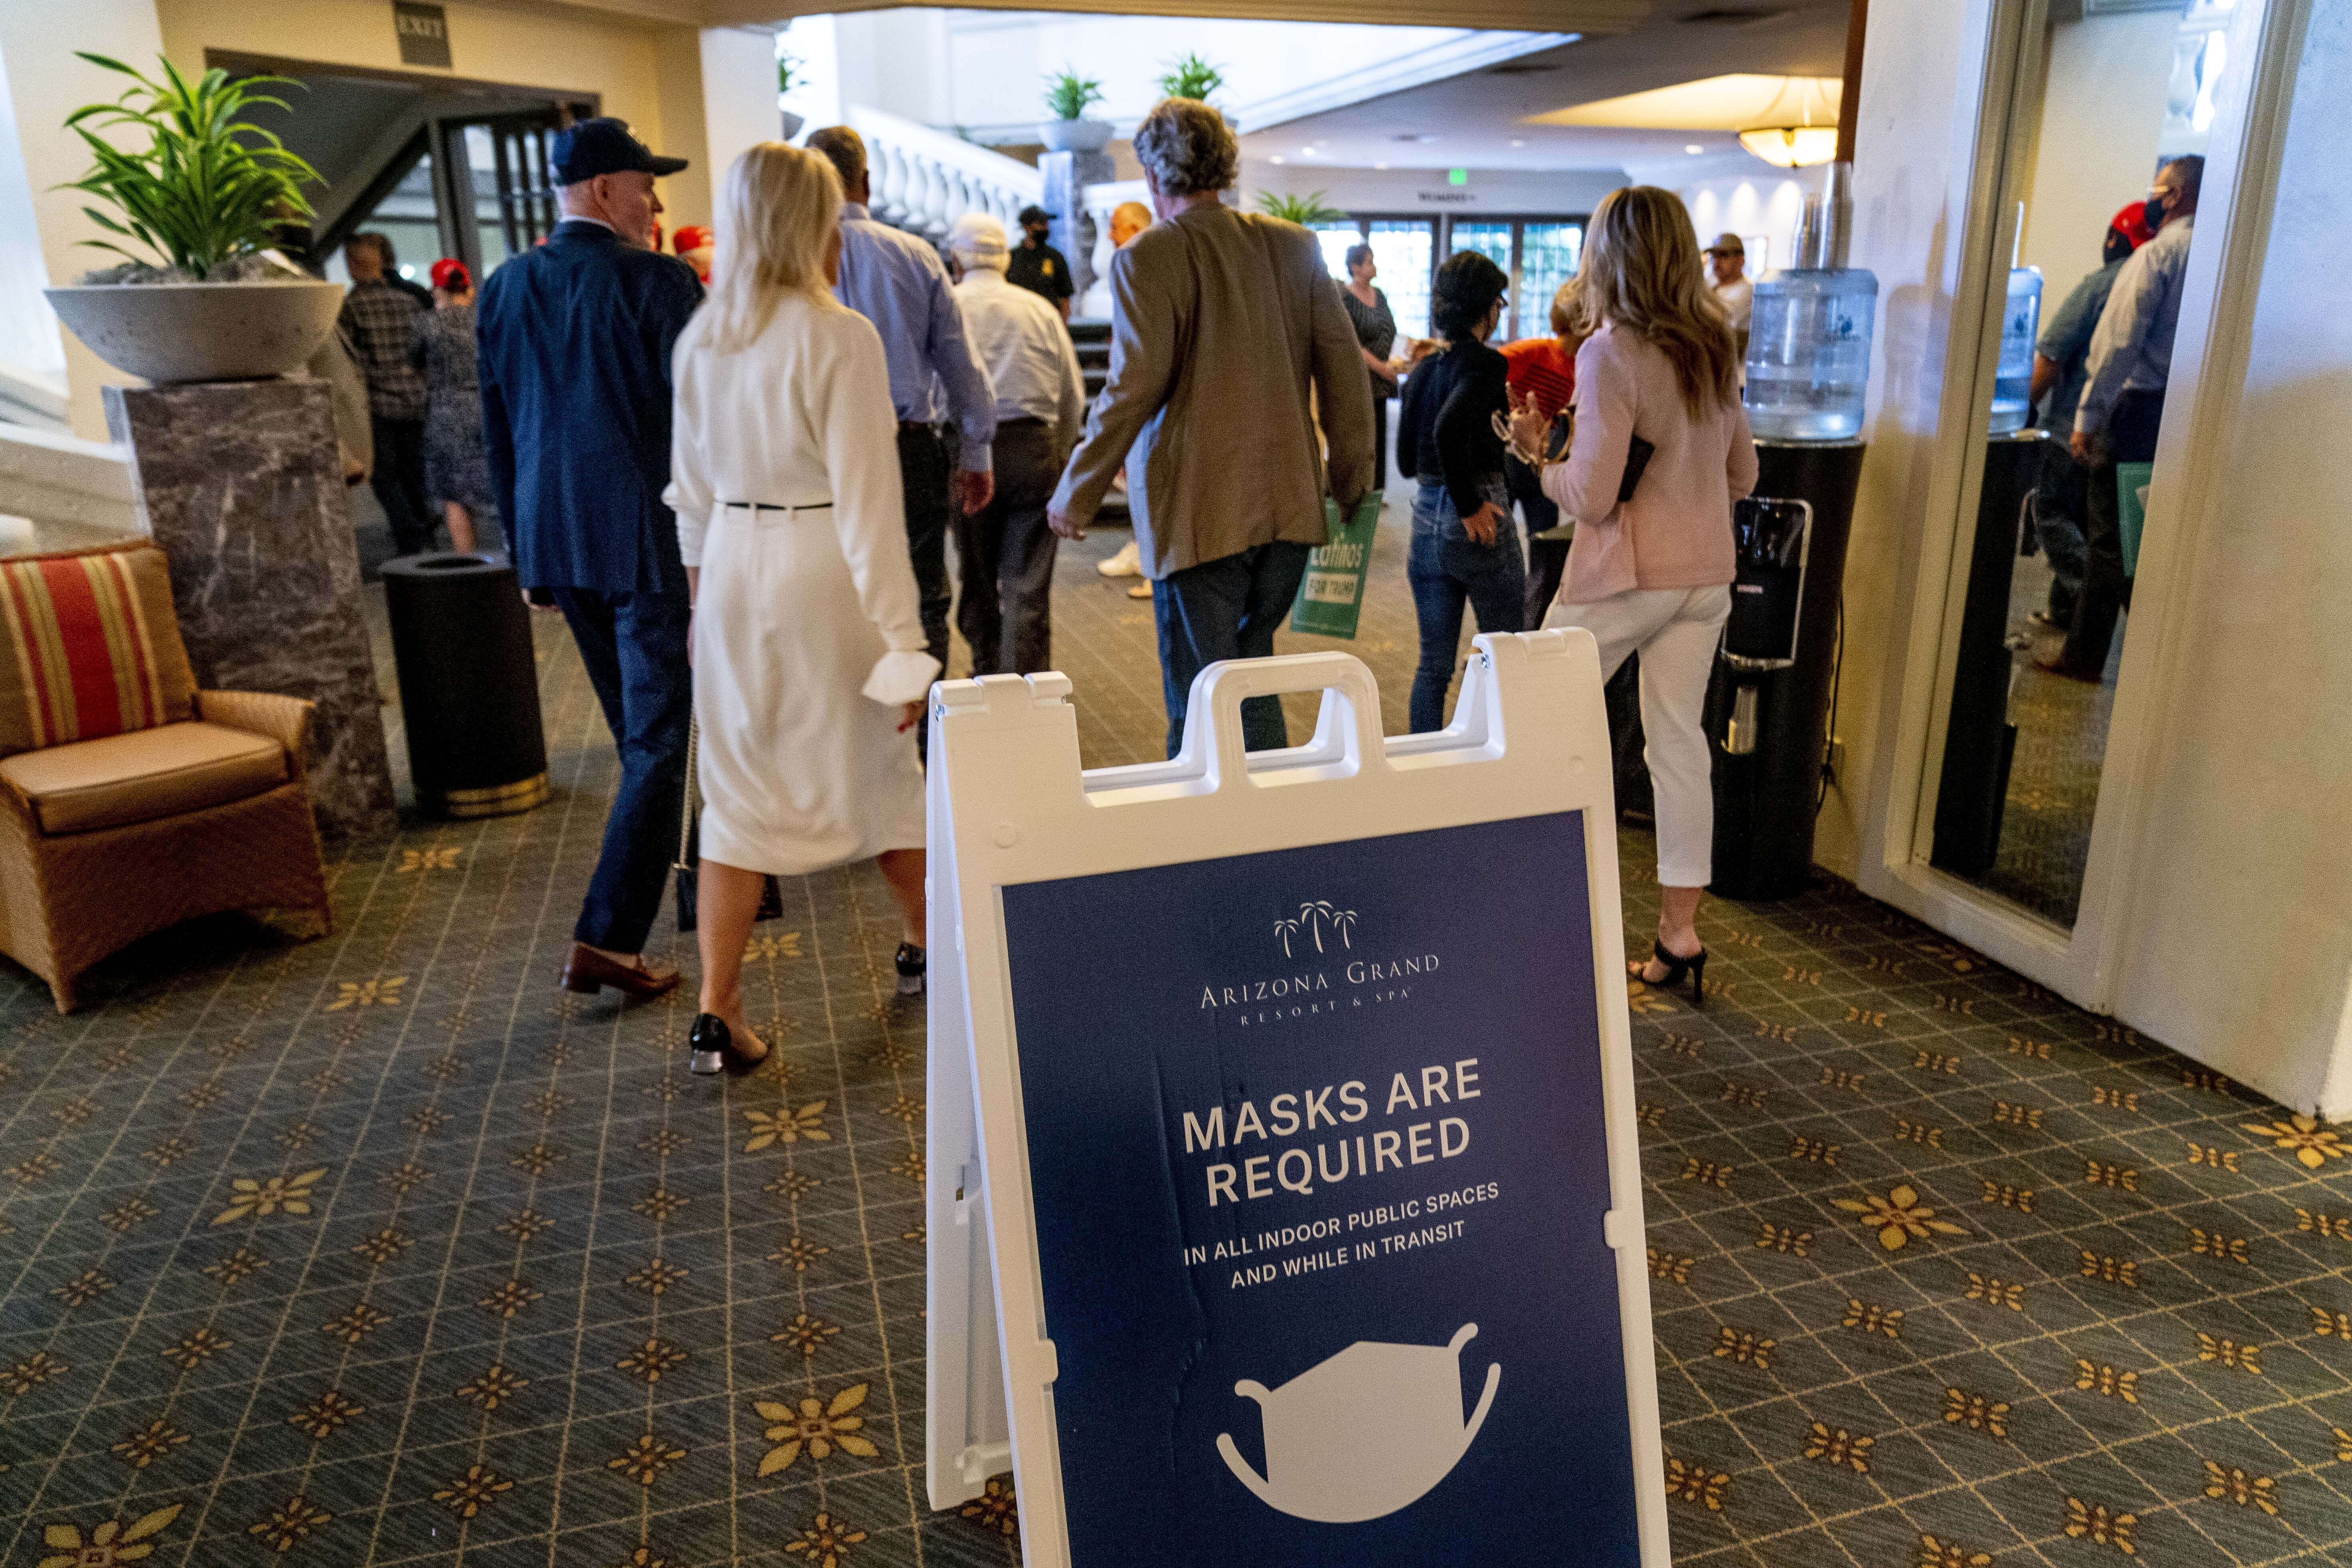 """A sign reads """"Masks Are Required"""" outside a Latinos for Trump Coalition roundtable where President Donald Trump spoke at Arizona Grand Resort & Spa, Monday, Sept. 14, 2020, in Phoenix. (AP Photo/Andrew Harnik)"""